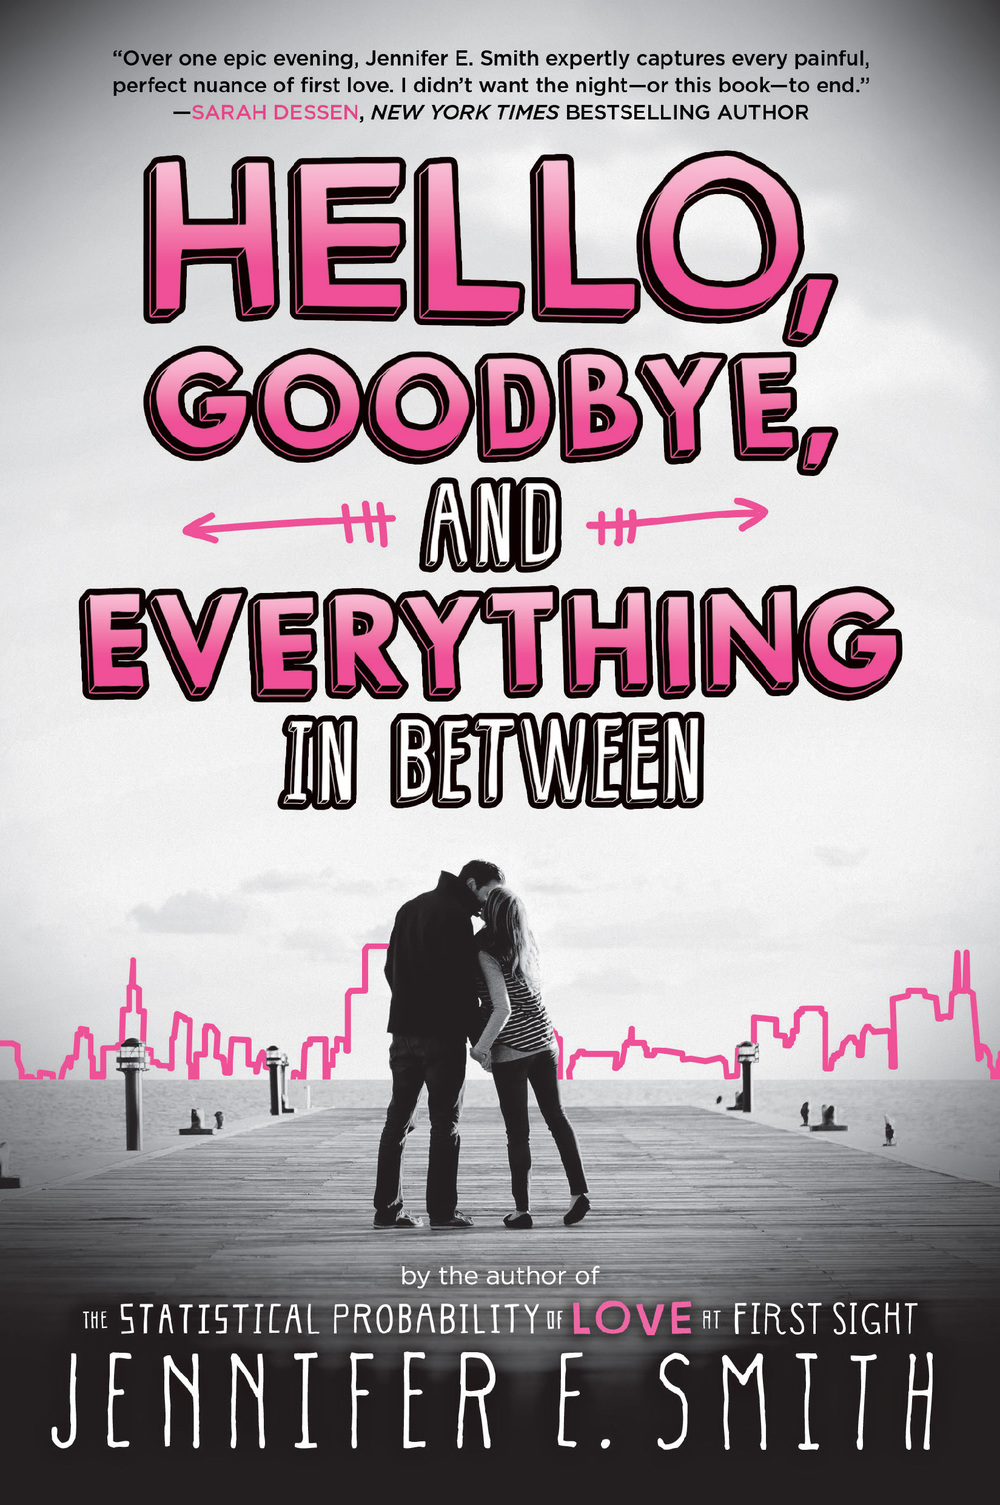 Book Review: 'Hello, Goodbye, and Everything in Between' by Jennifer E. Smith